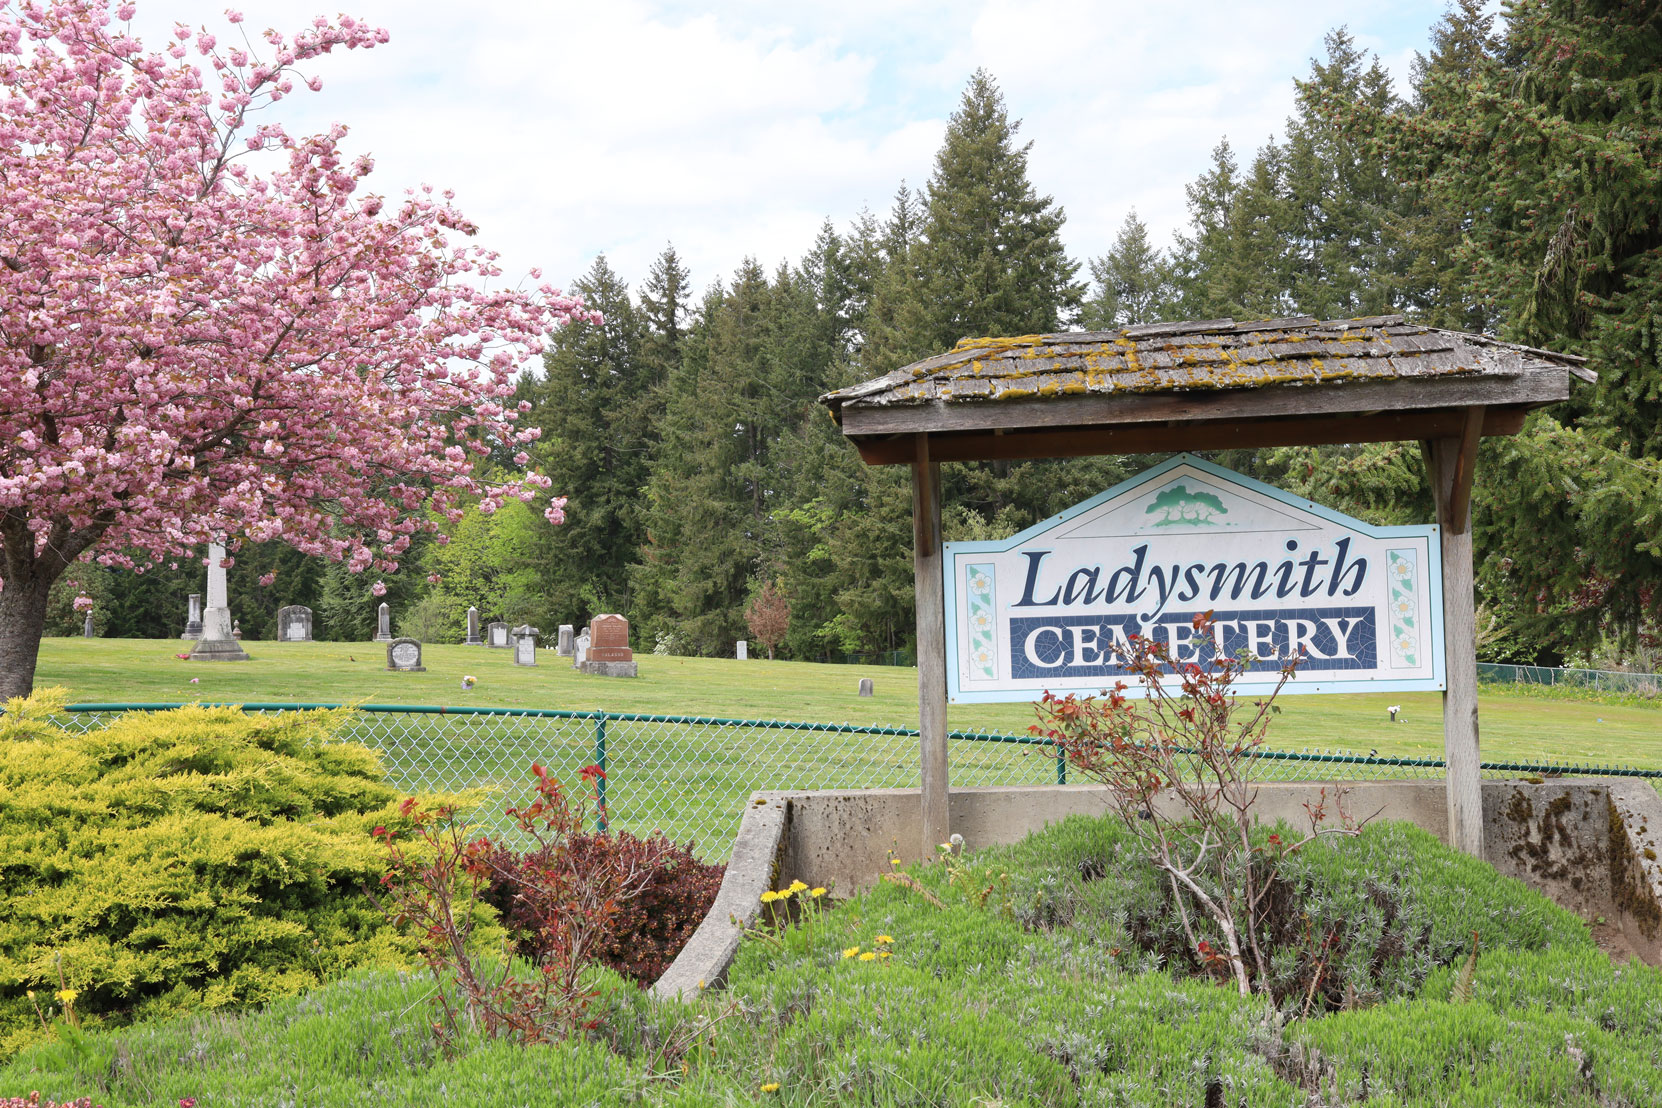 The Ladysmith Cemetery entrance on Christie Road.